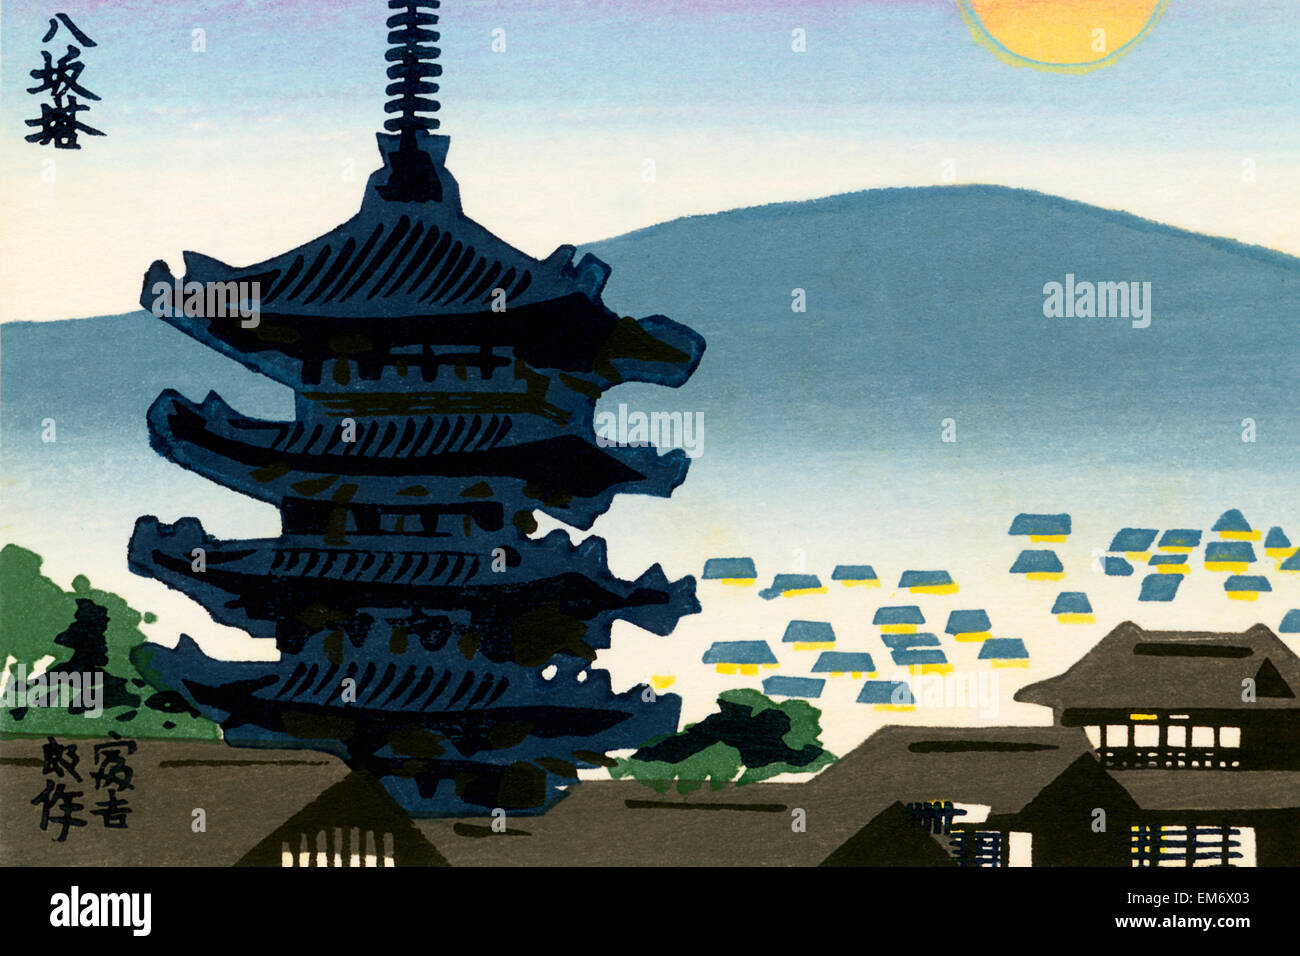 Pittura Giapponese Periodo Edo Japan Painting Immagini And Japan Painting Fotos Stock Alamy